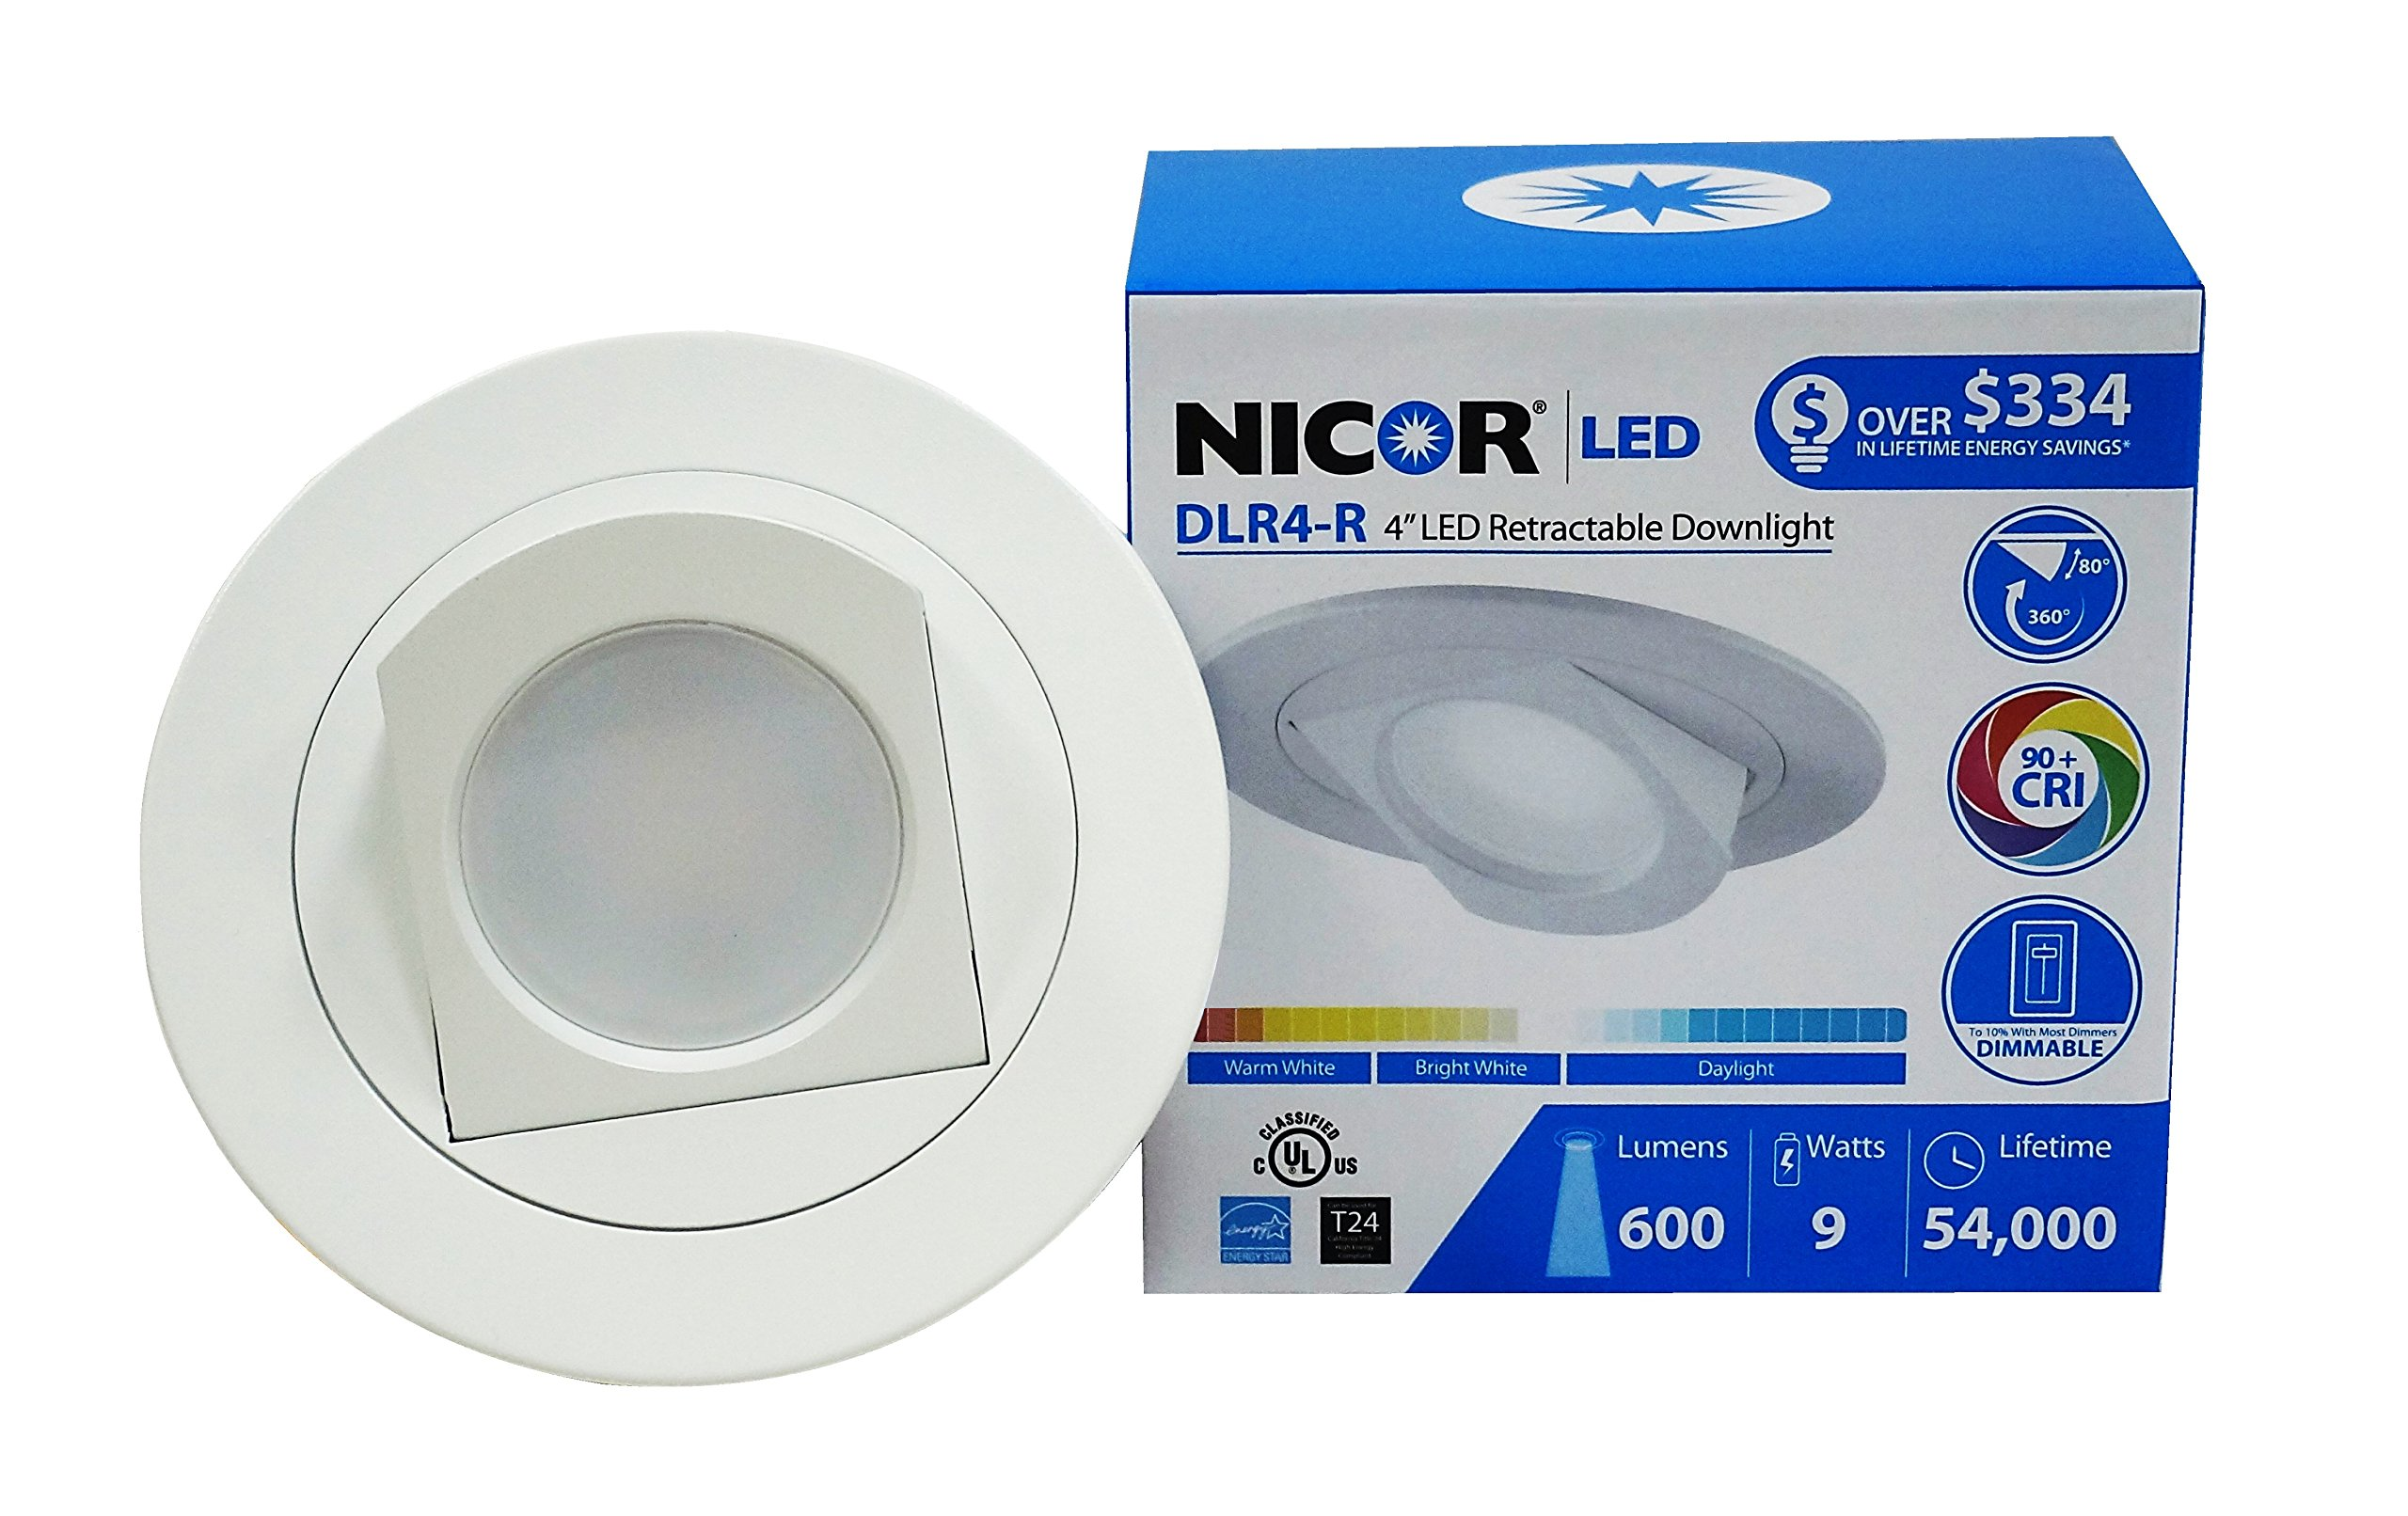 NICOR Lighting 4-Inch Dimmable 2700K LED Adjustable Retractable Downlight Retrofit Kit for Recessed Housings, White Trim (DLR4-R-10-120-2K-WH)